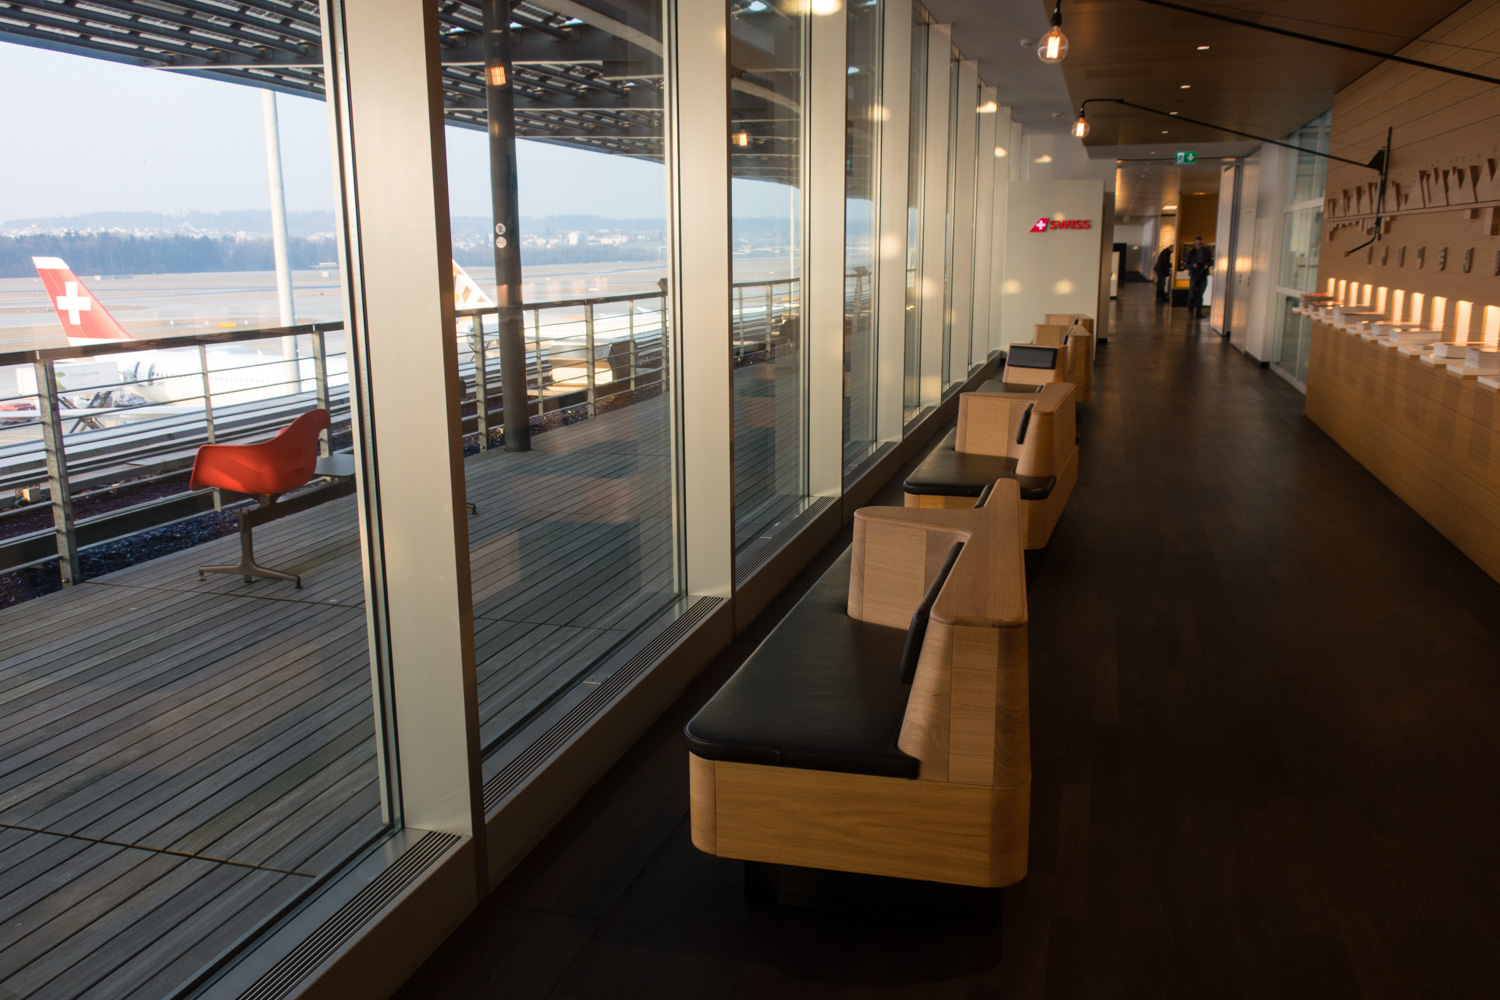 Window Seating - Swiss Senator Lounge Zurich   Photo: Calvin Wood